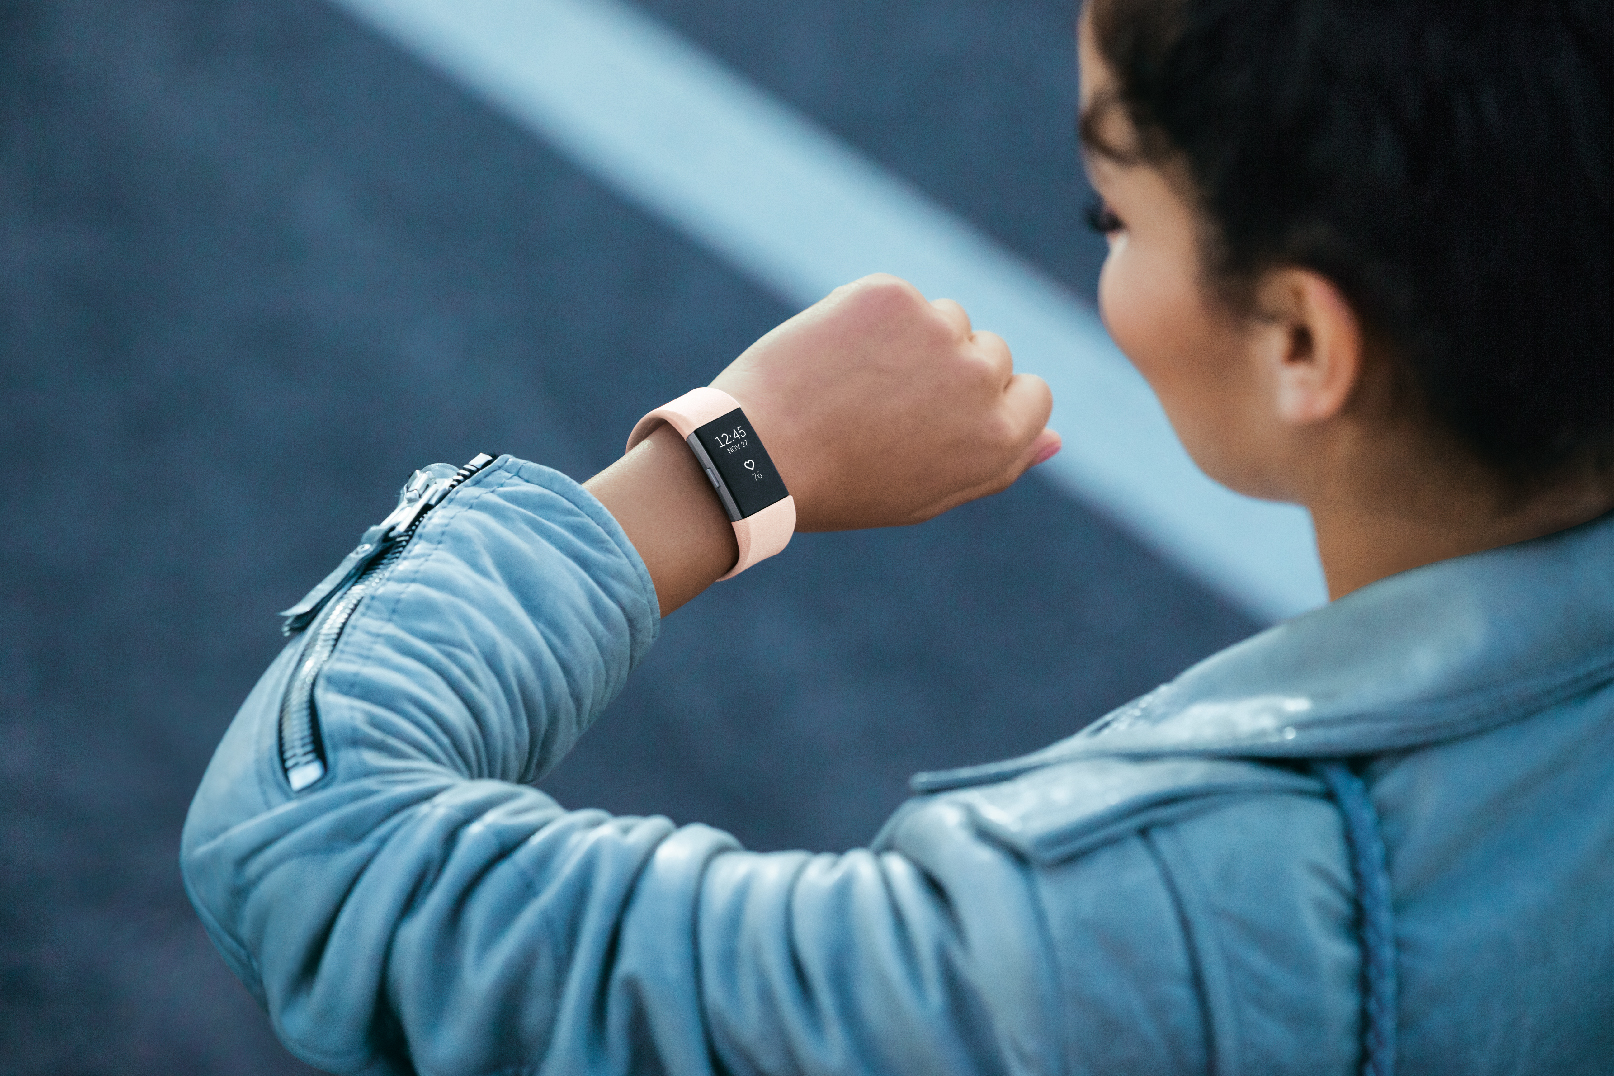 The new Fitbit Charge 2 fitness tracker.